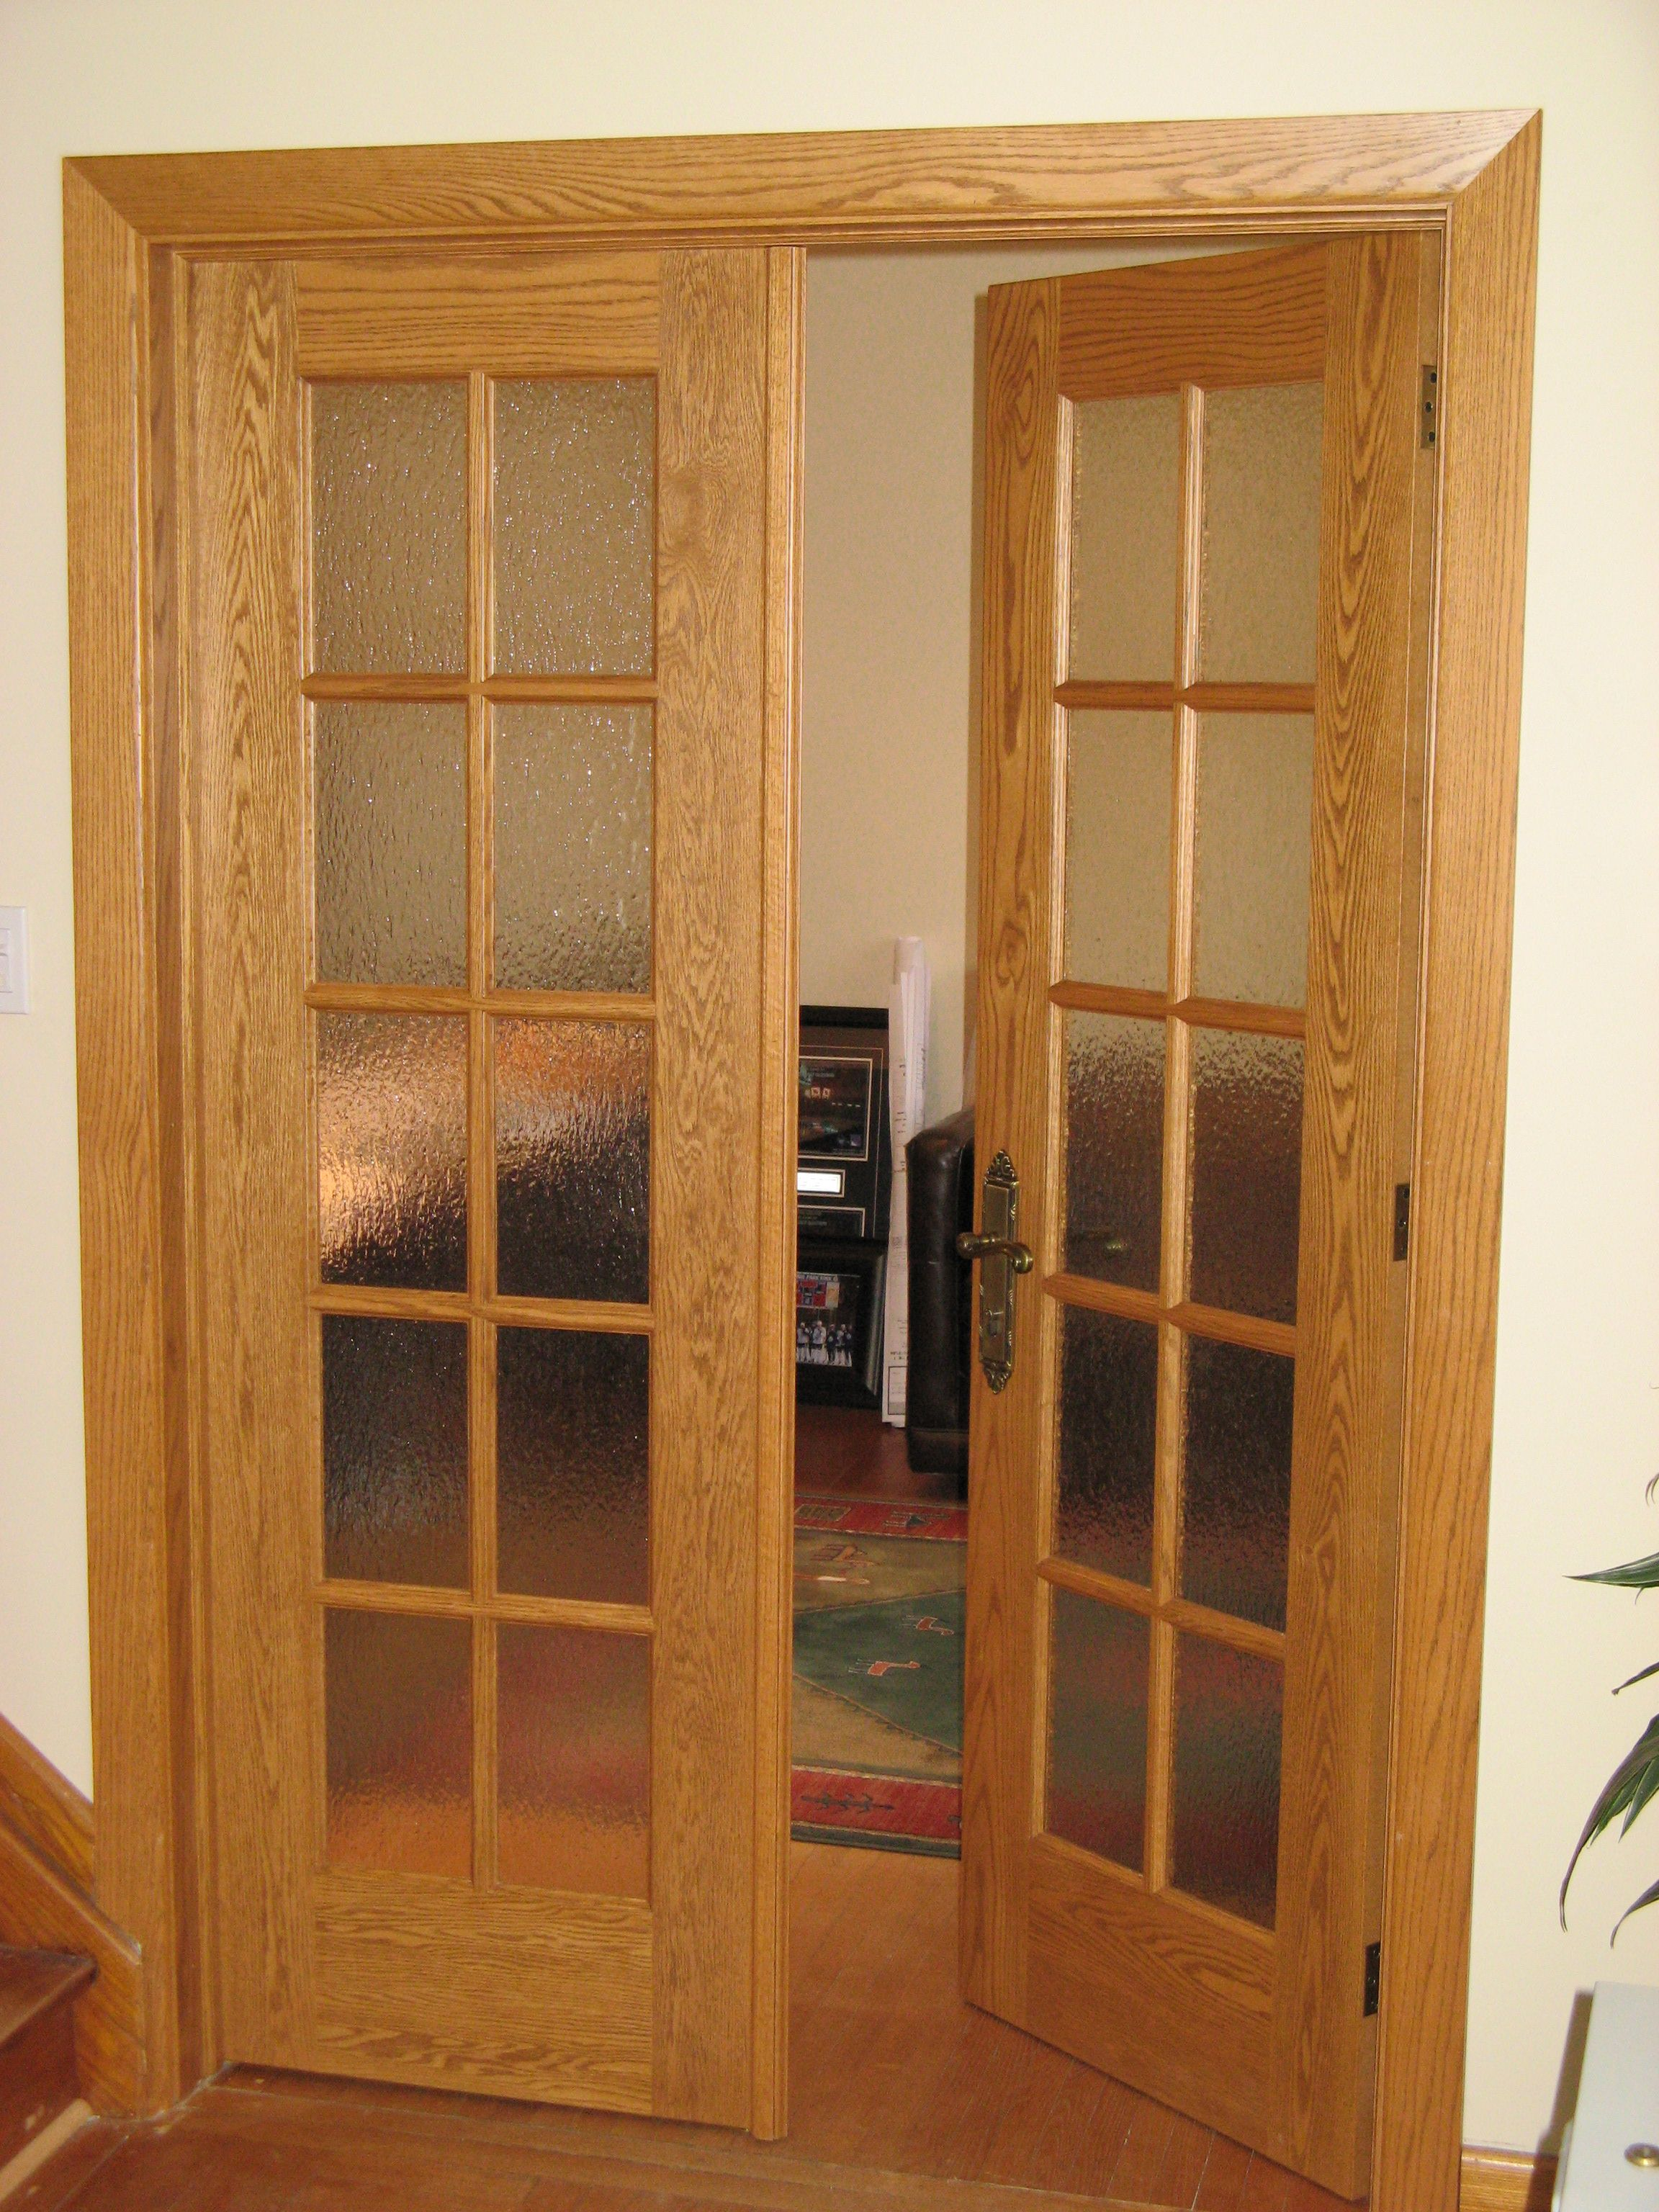 This Is A Stunning Amberwood Interior 10 Light Flat Sawn White Oak French Door Opening Into A Den Doors Interior Custom Wood Doors Oak French Doors